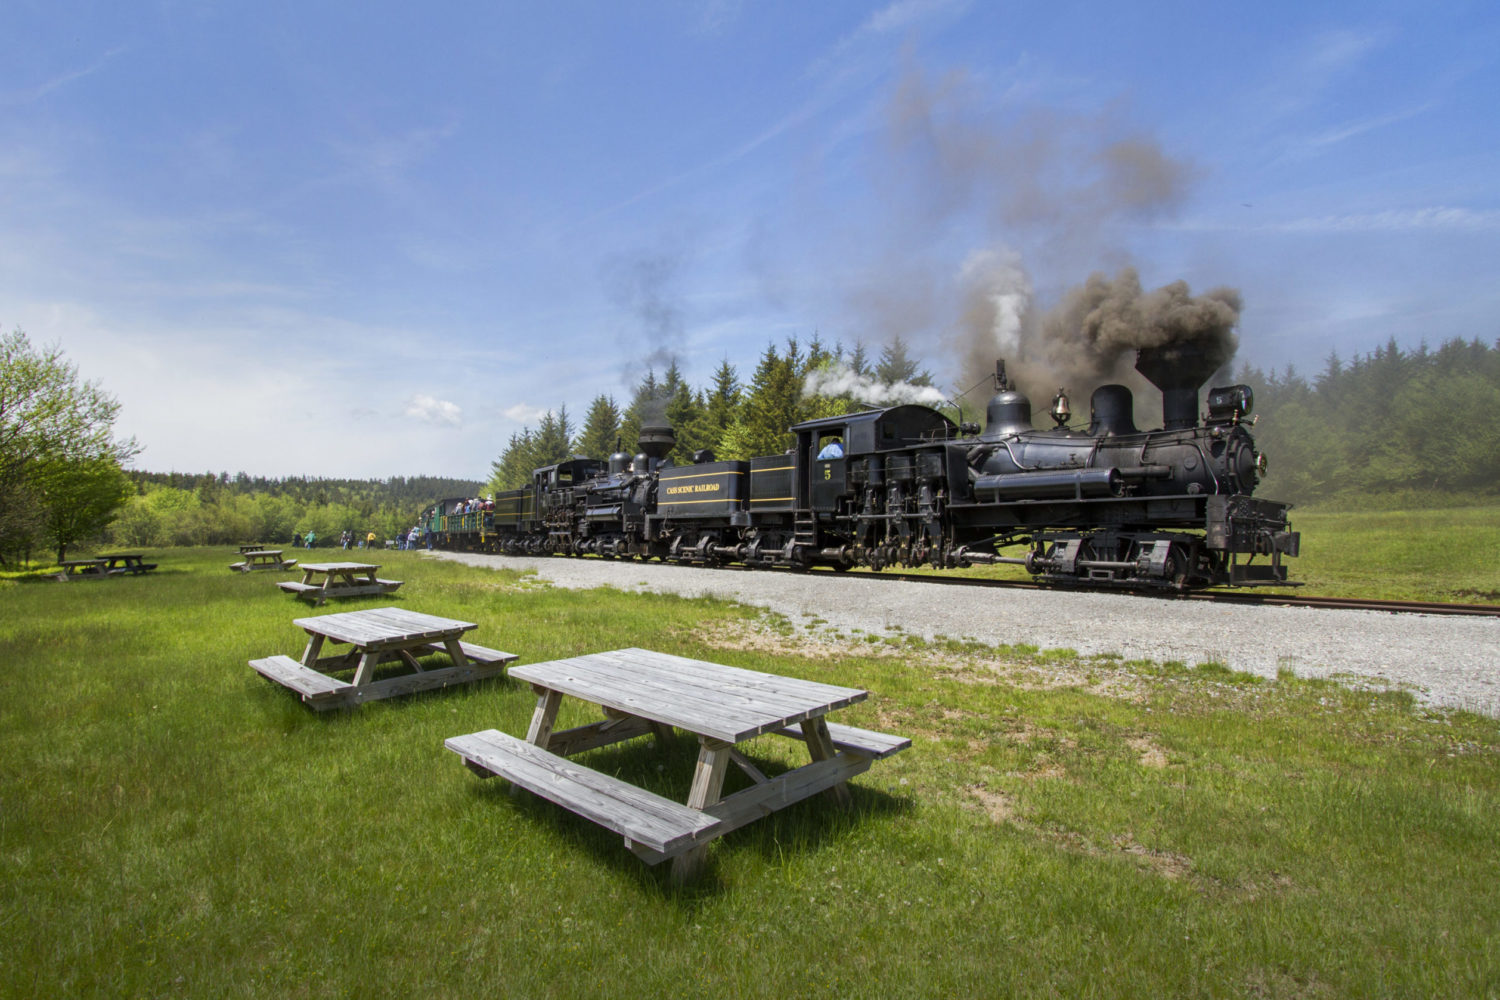 Celebrating 20 years of MountainRail Relaxation